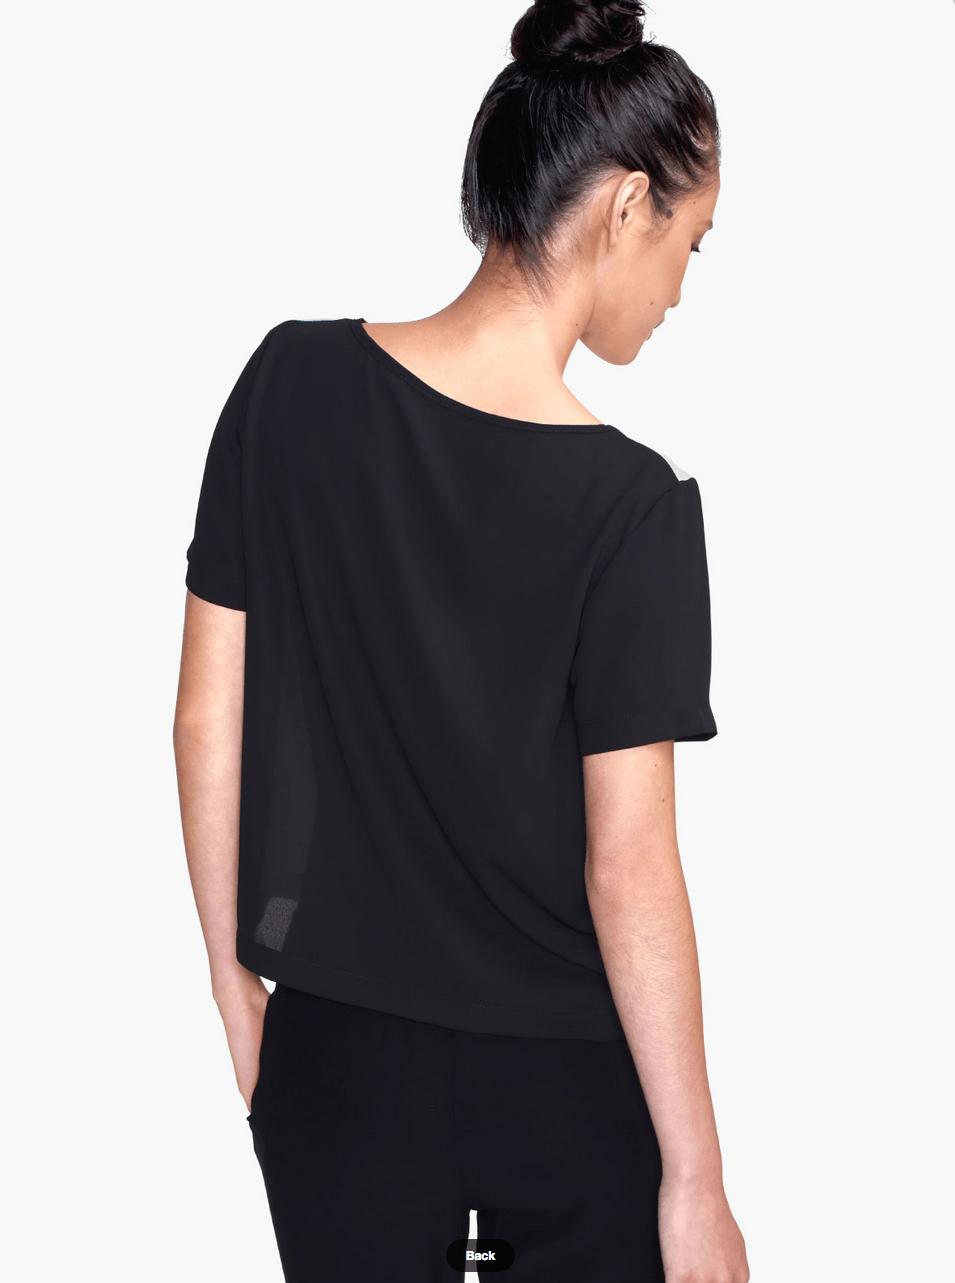 Modern top - Chiffon Top - Women Blouse - Modern Clothing-TheGretest